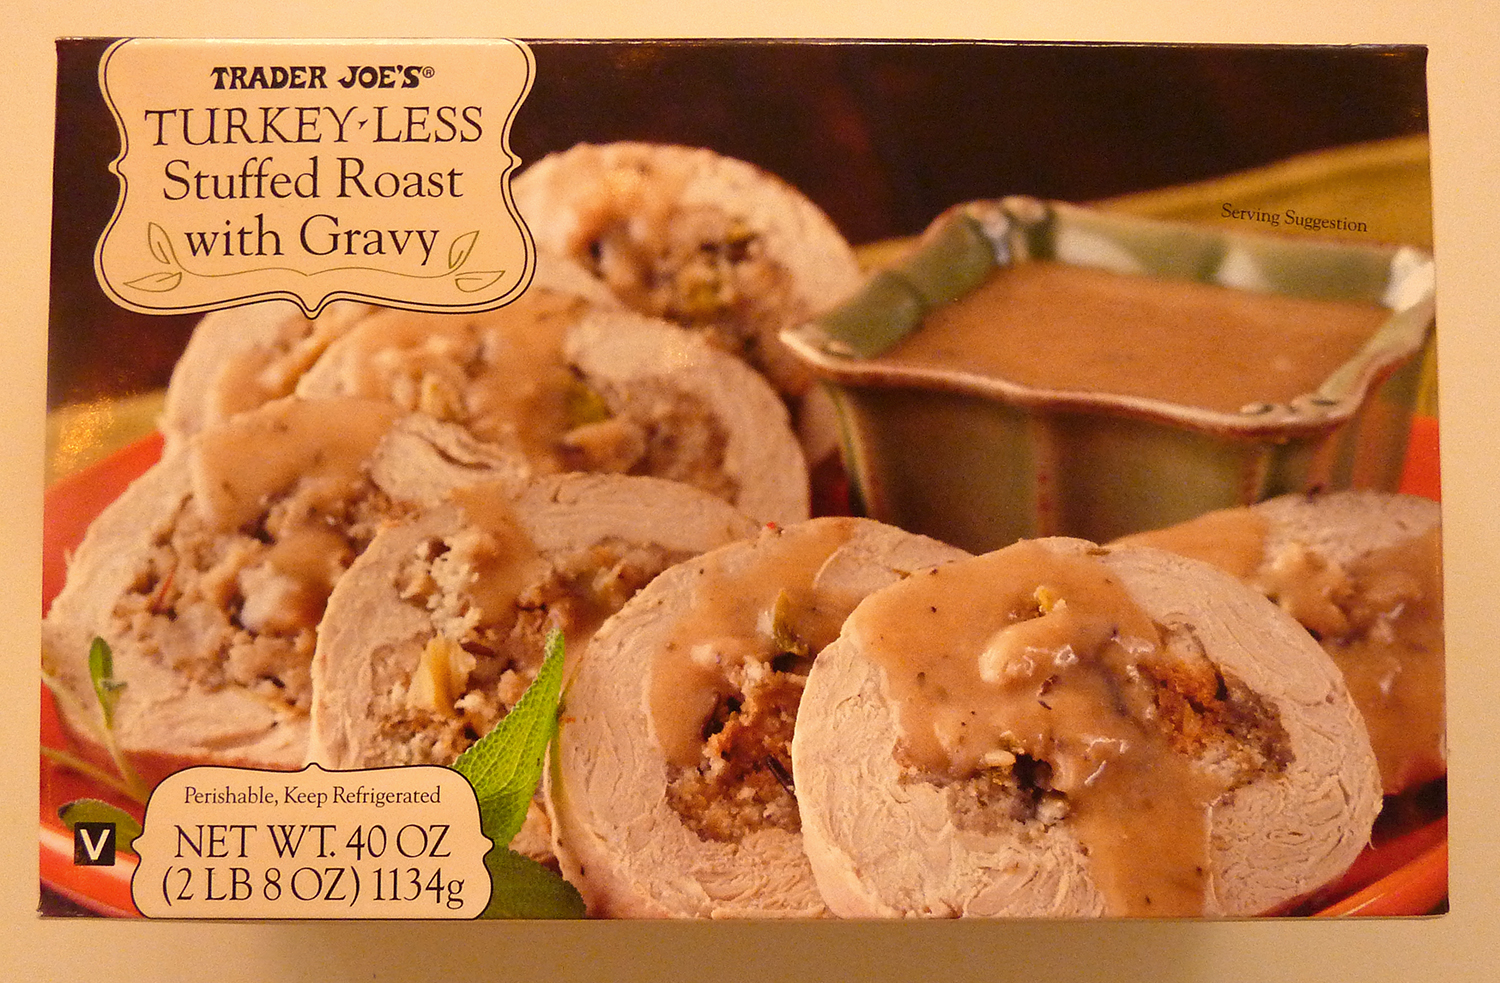 Whats Good At Trader Joes 2012 Fancy Feast Grilled Turkey In Gravy 85g 6 Pcs Free Pouch Less Stuffed Roast With